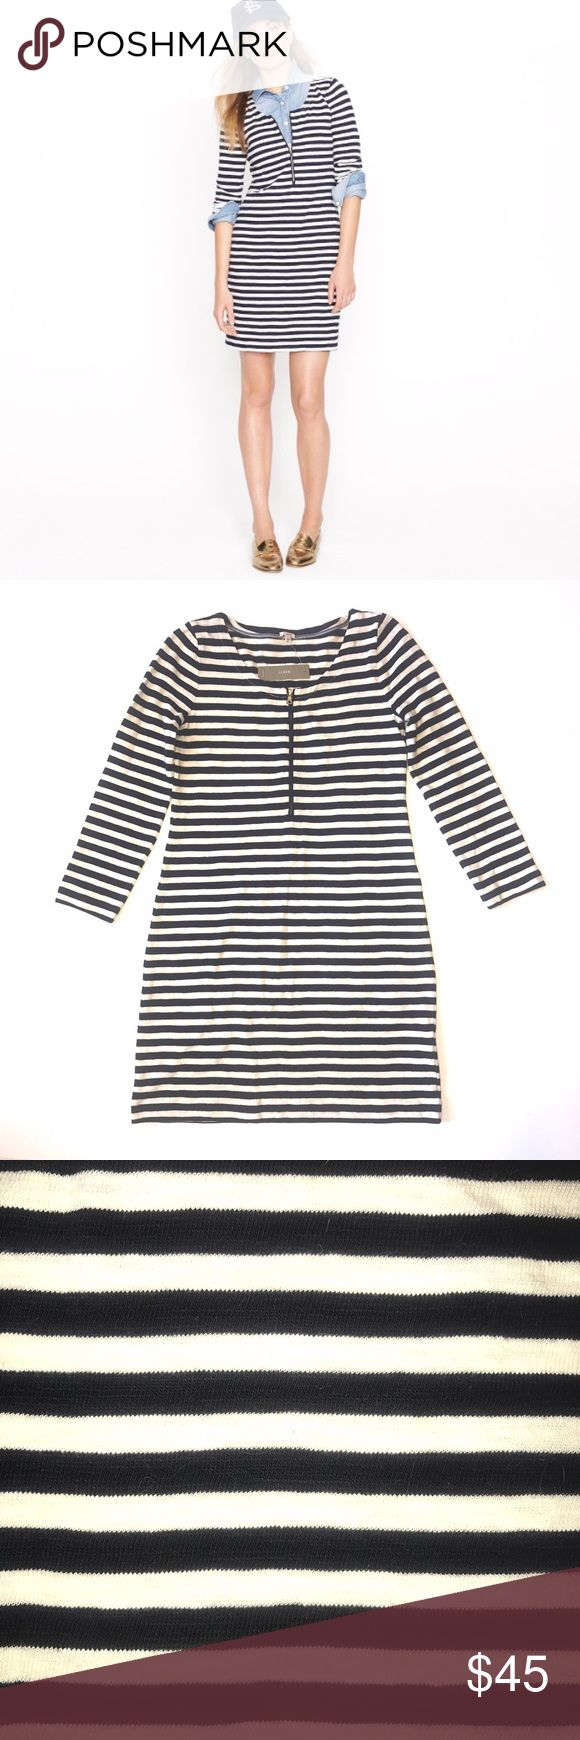 """NWT J. Crew Zip-front T-shirt Dress """"T-shirt dress with a sleek, body-skimming shape that's cut to flatter. Done in nautical stripes in comfy cotton. We gave it a sporty exposed front zip for a modern edge."""" NWT. Size XS.   •lowball offers will be declined •no trades •ask all questions before buying •unfair ratings from buyers are reported & buyer will be blocked - I don't misrepresent my products; what you see is exactly what you get & my prices are way more than fair. Please be kind as I…"""